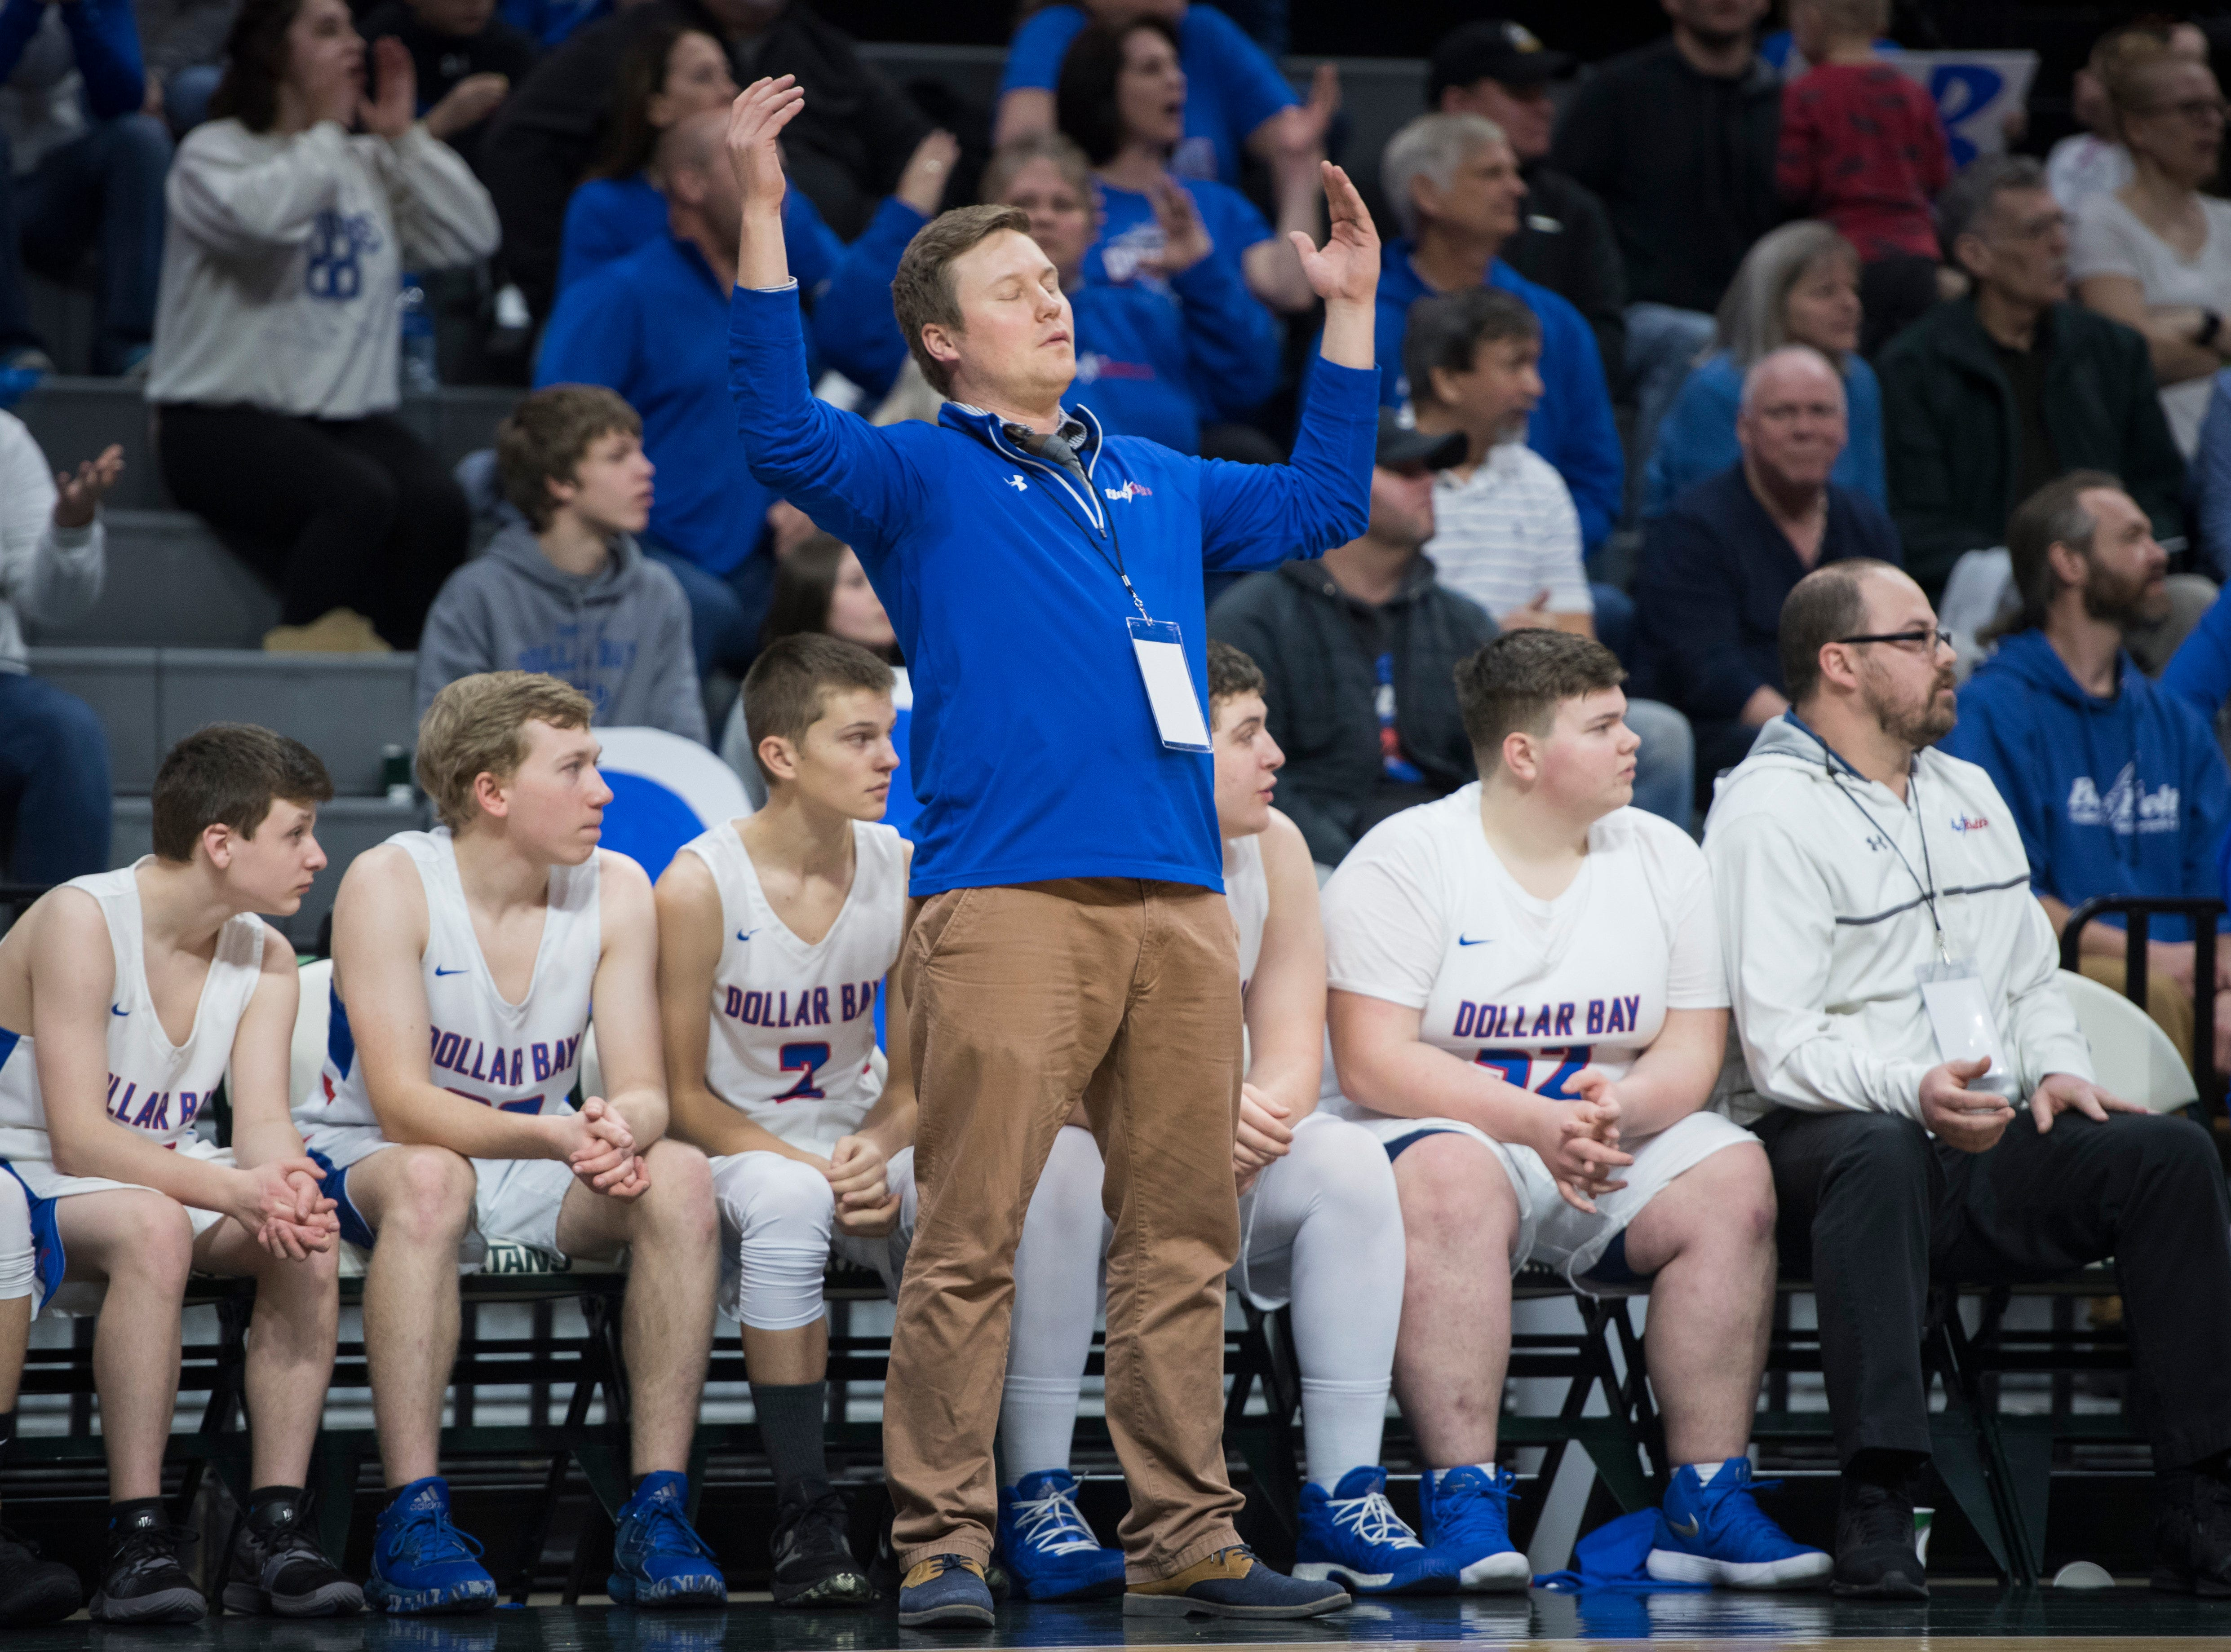 Dollar Bay's head coach Jesse Kentala reacts in the first half.